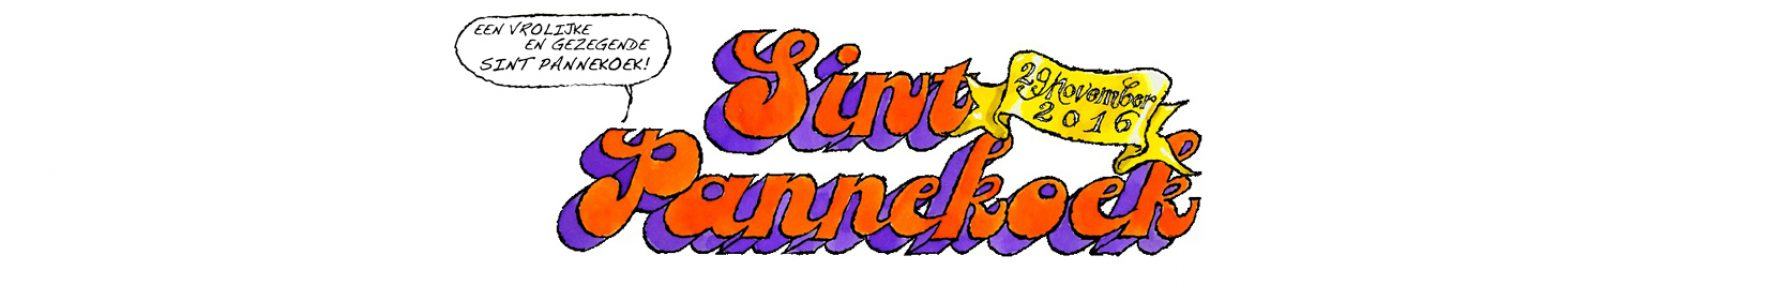 cropped-Sint-Pannekoek-strip-2.jpg